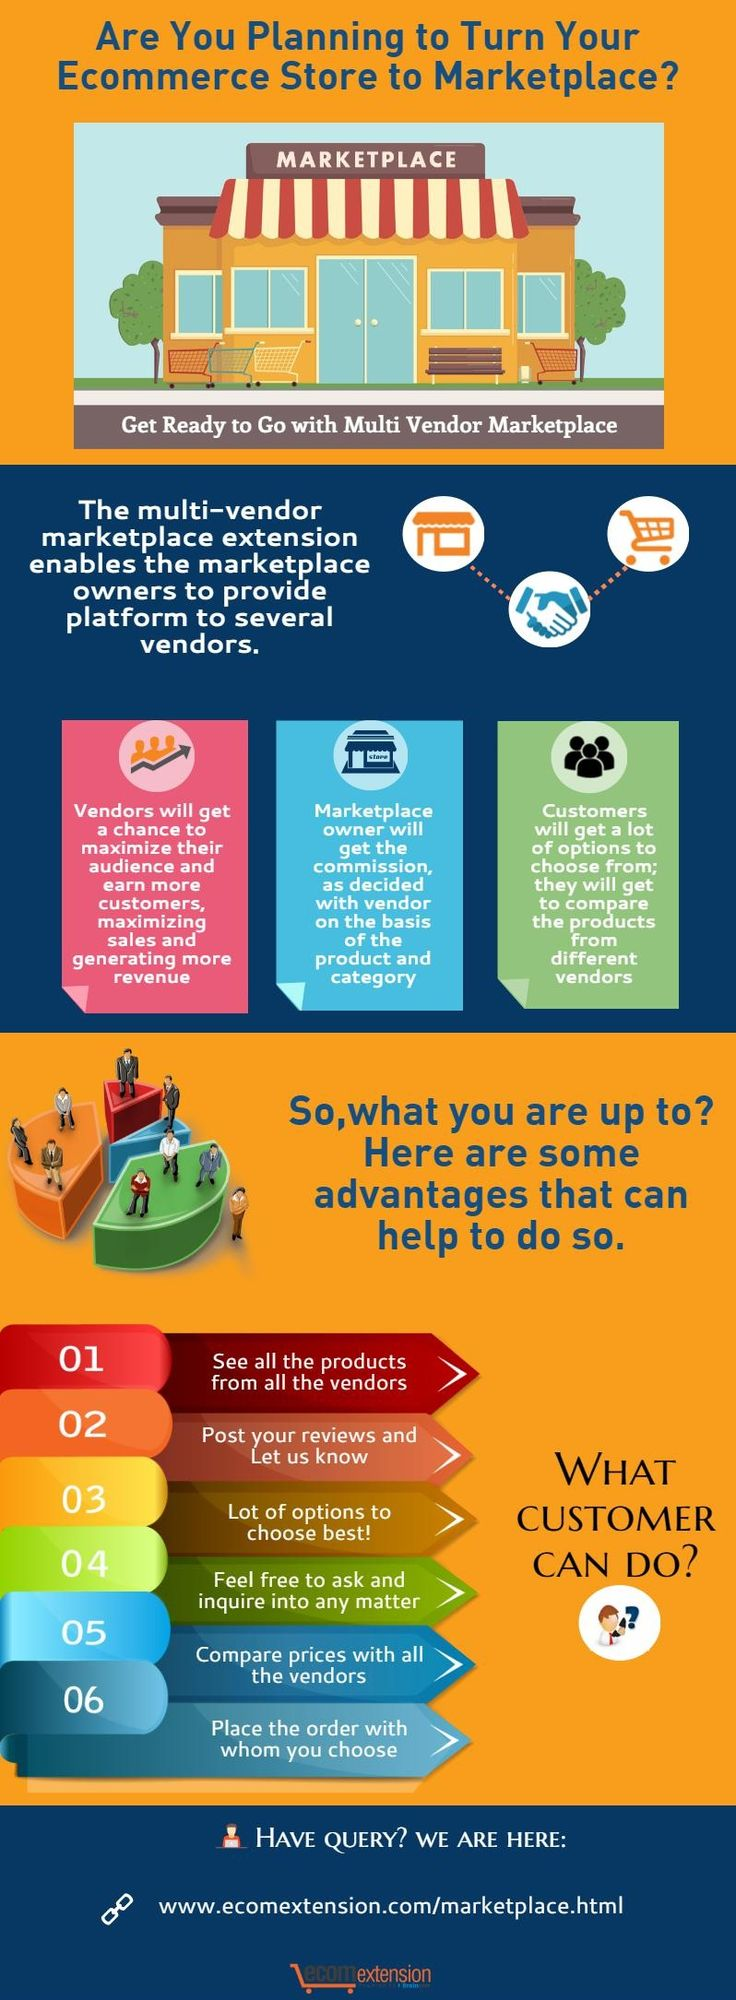 Plan your strategies towards converting your ecommerce store to marketplace. Stay Connected with us